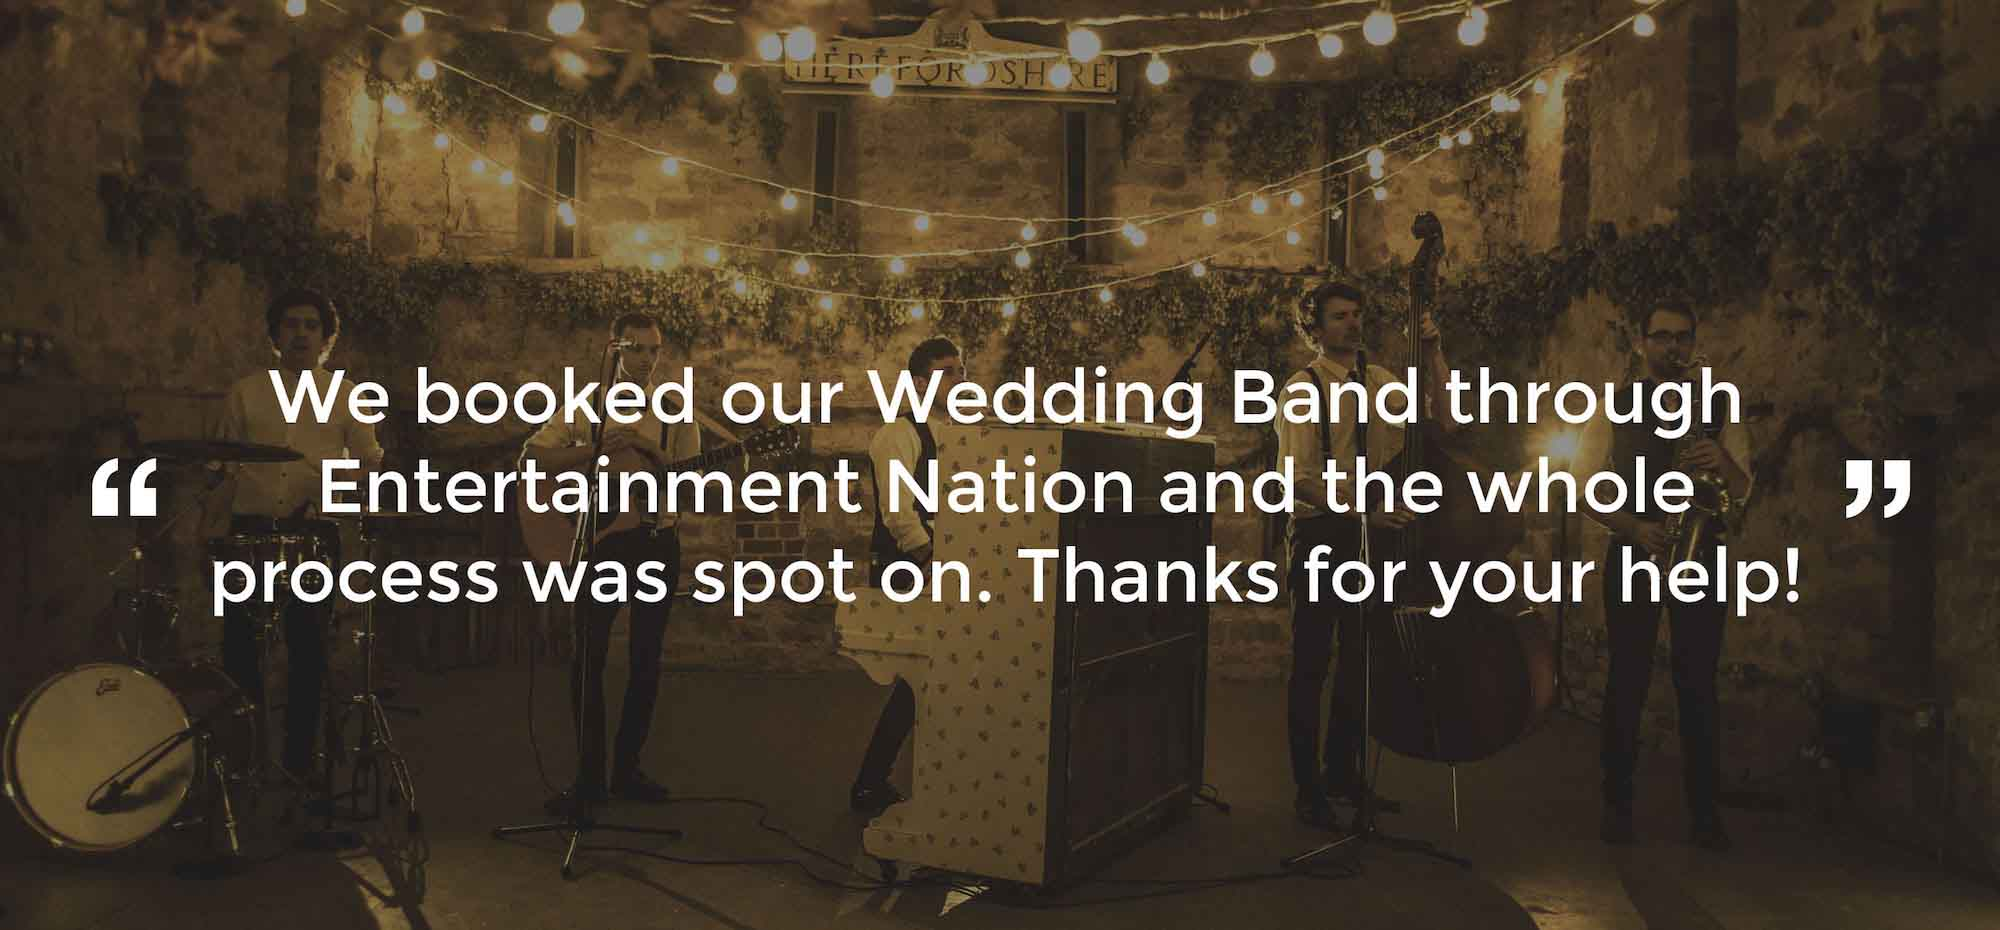 Client Review of a Wedding Band North Scotland